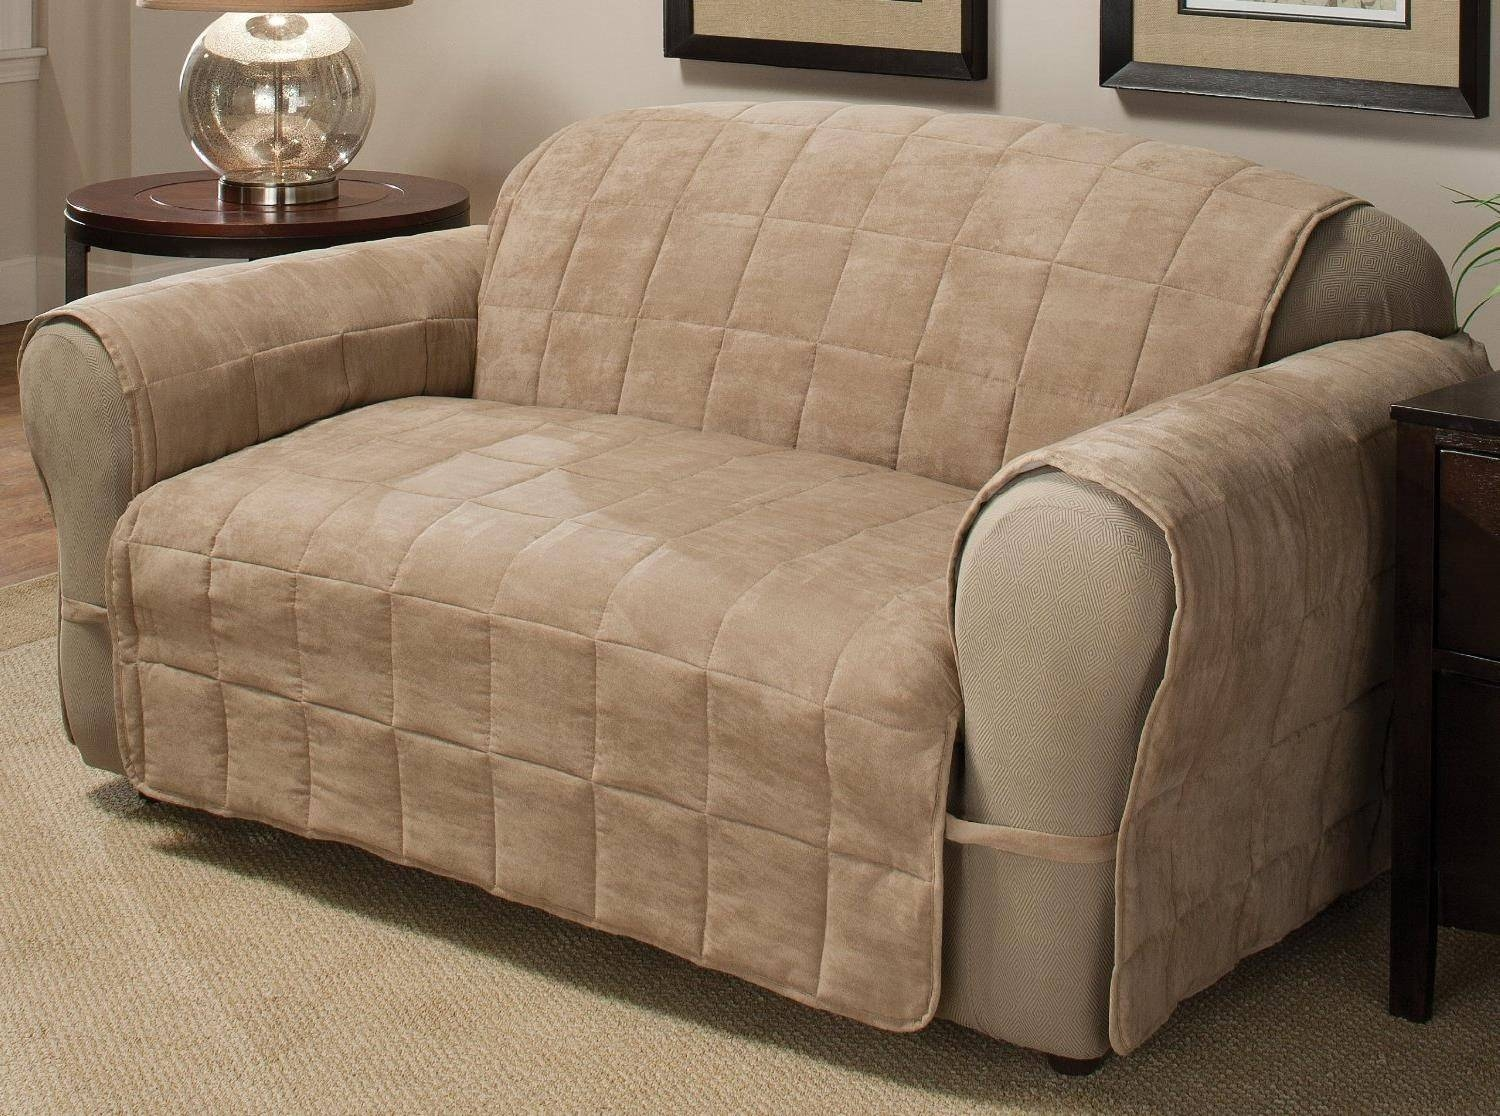 Modren Couch Covers Canada Of Sofas Centermarys Custom Made Sofa With Regard To Sofa Settee Covers (View 22 of 30)